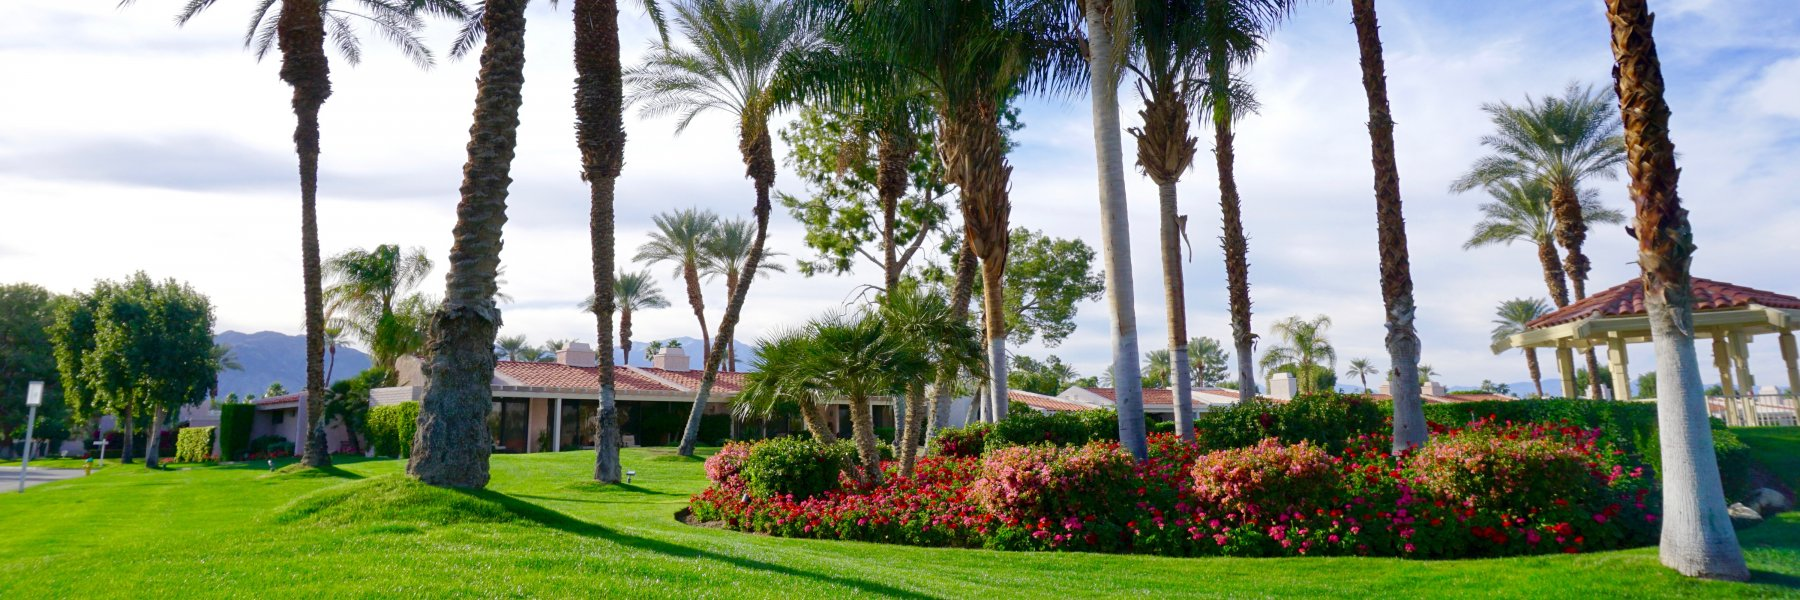 Dorado Villas is a community of homes in Indian Wells, California